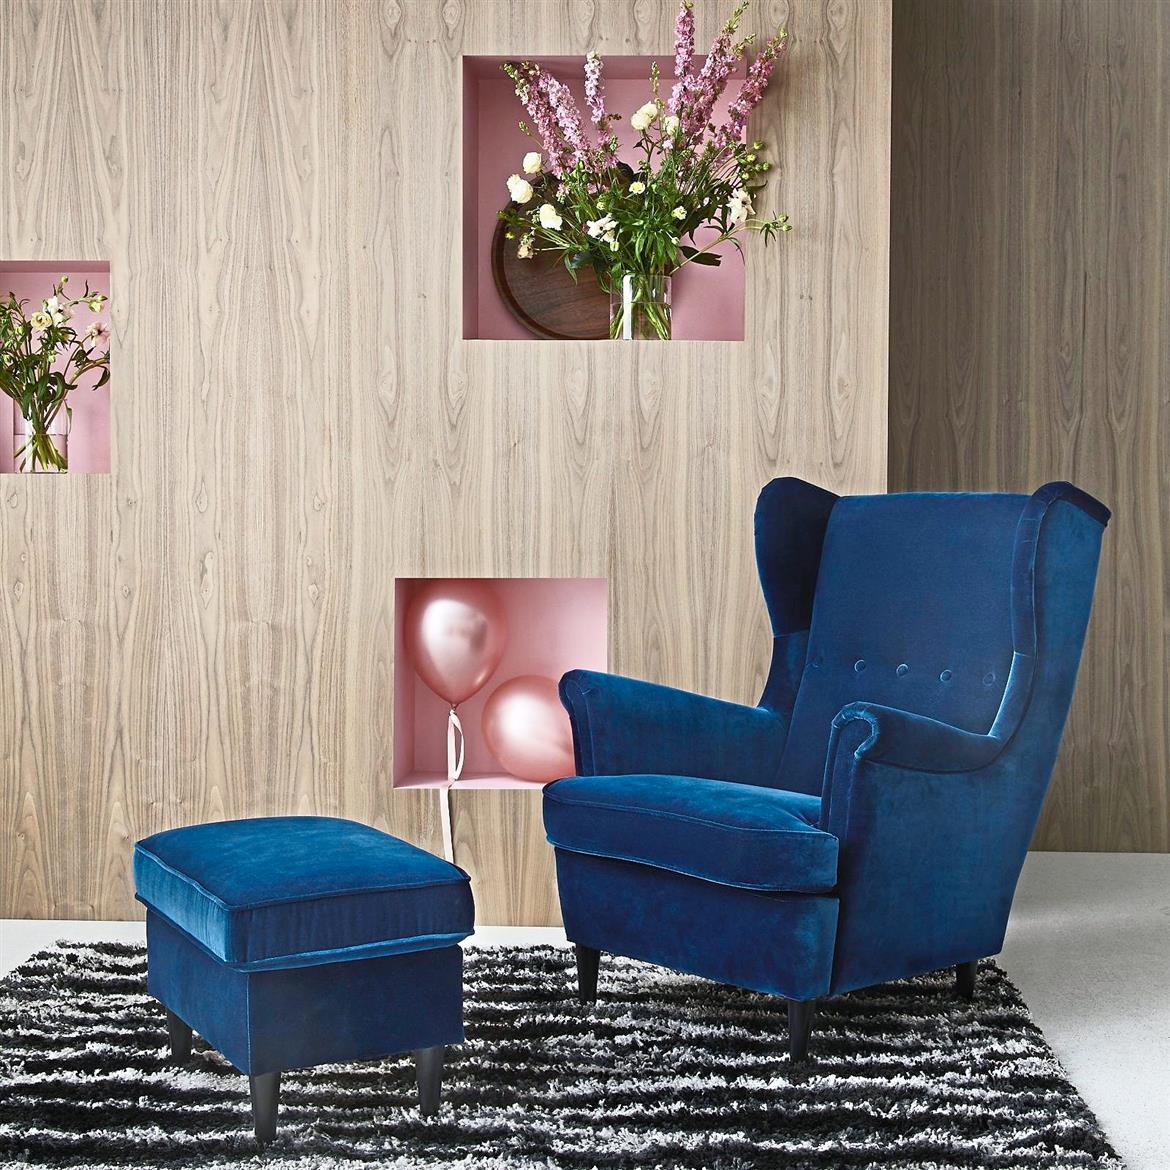 Ikea celebrates 75th anniversary with a vintage collection